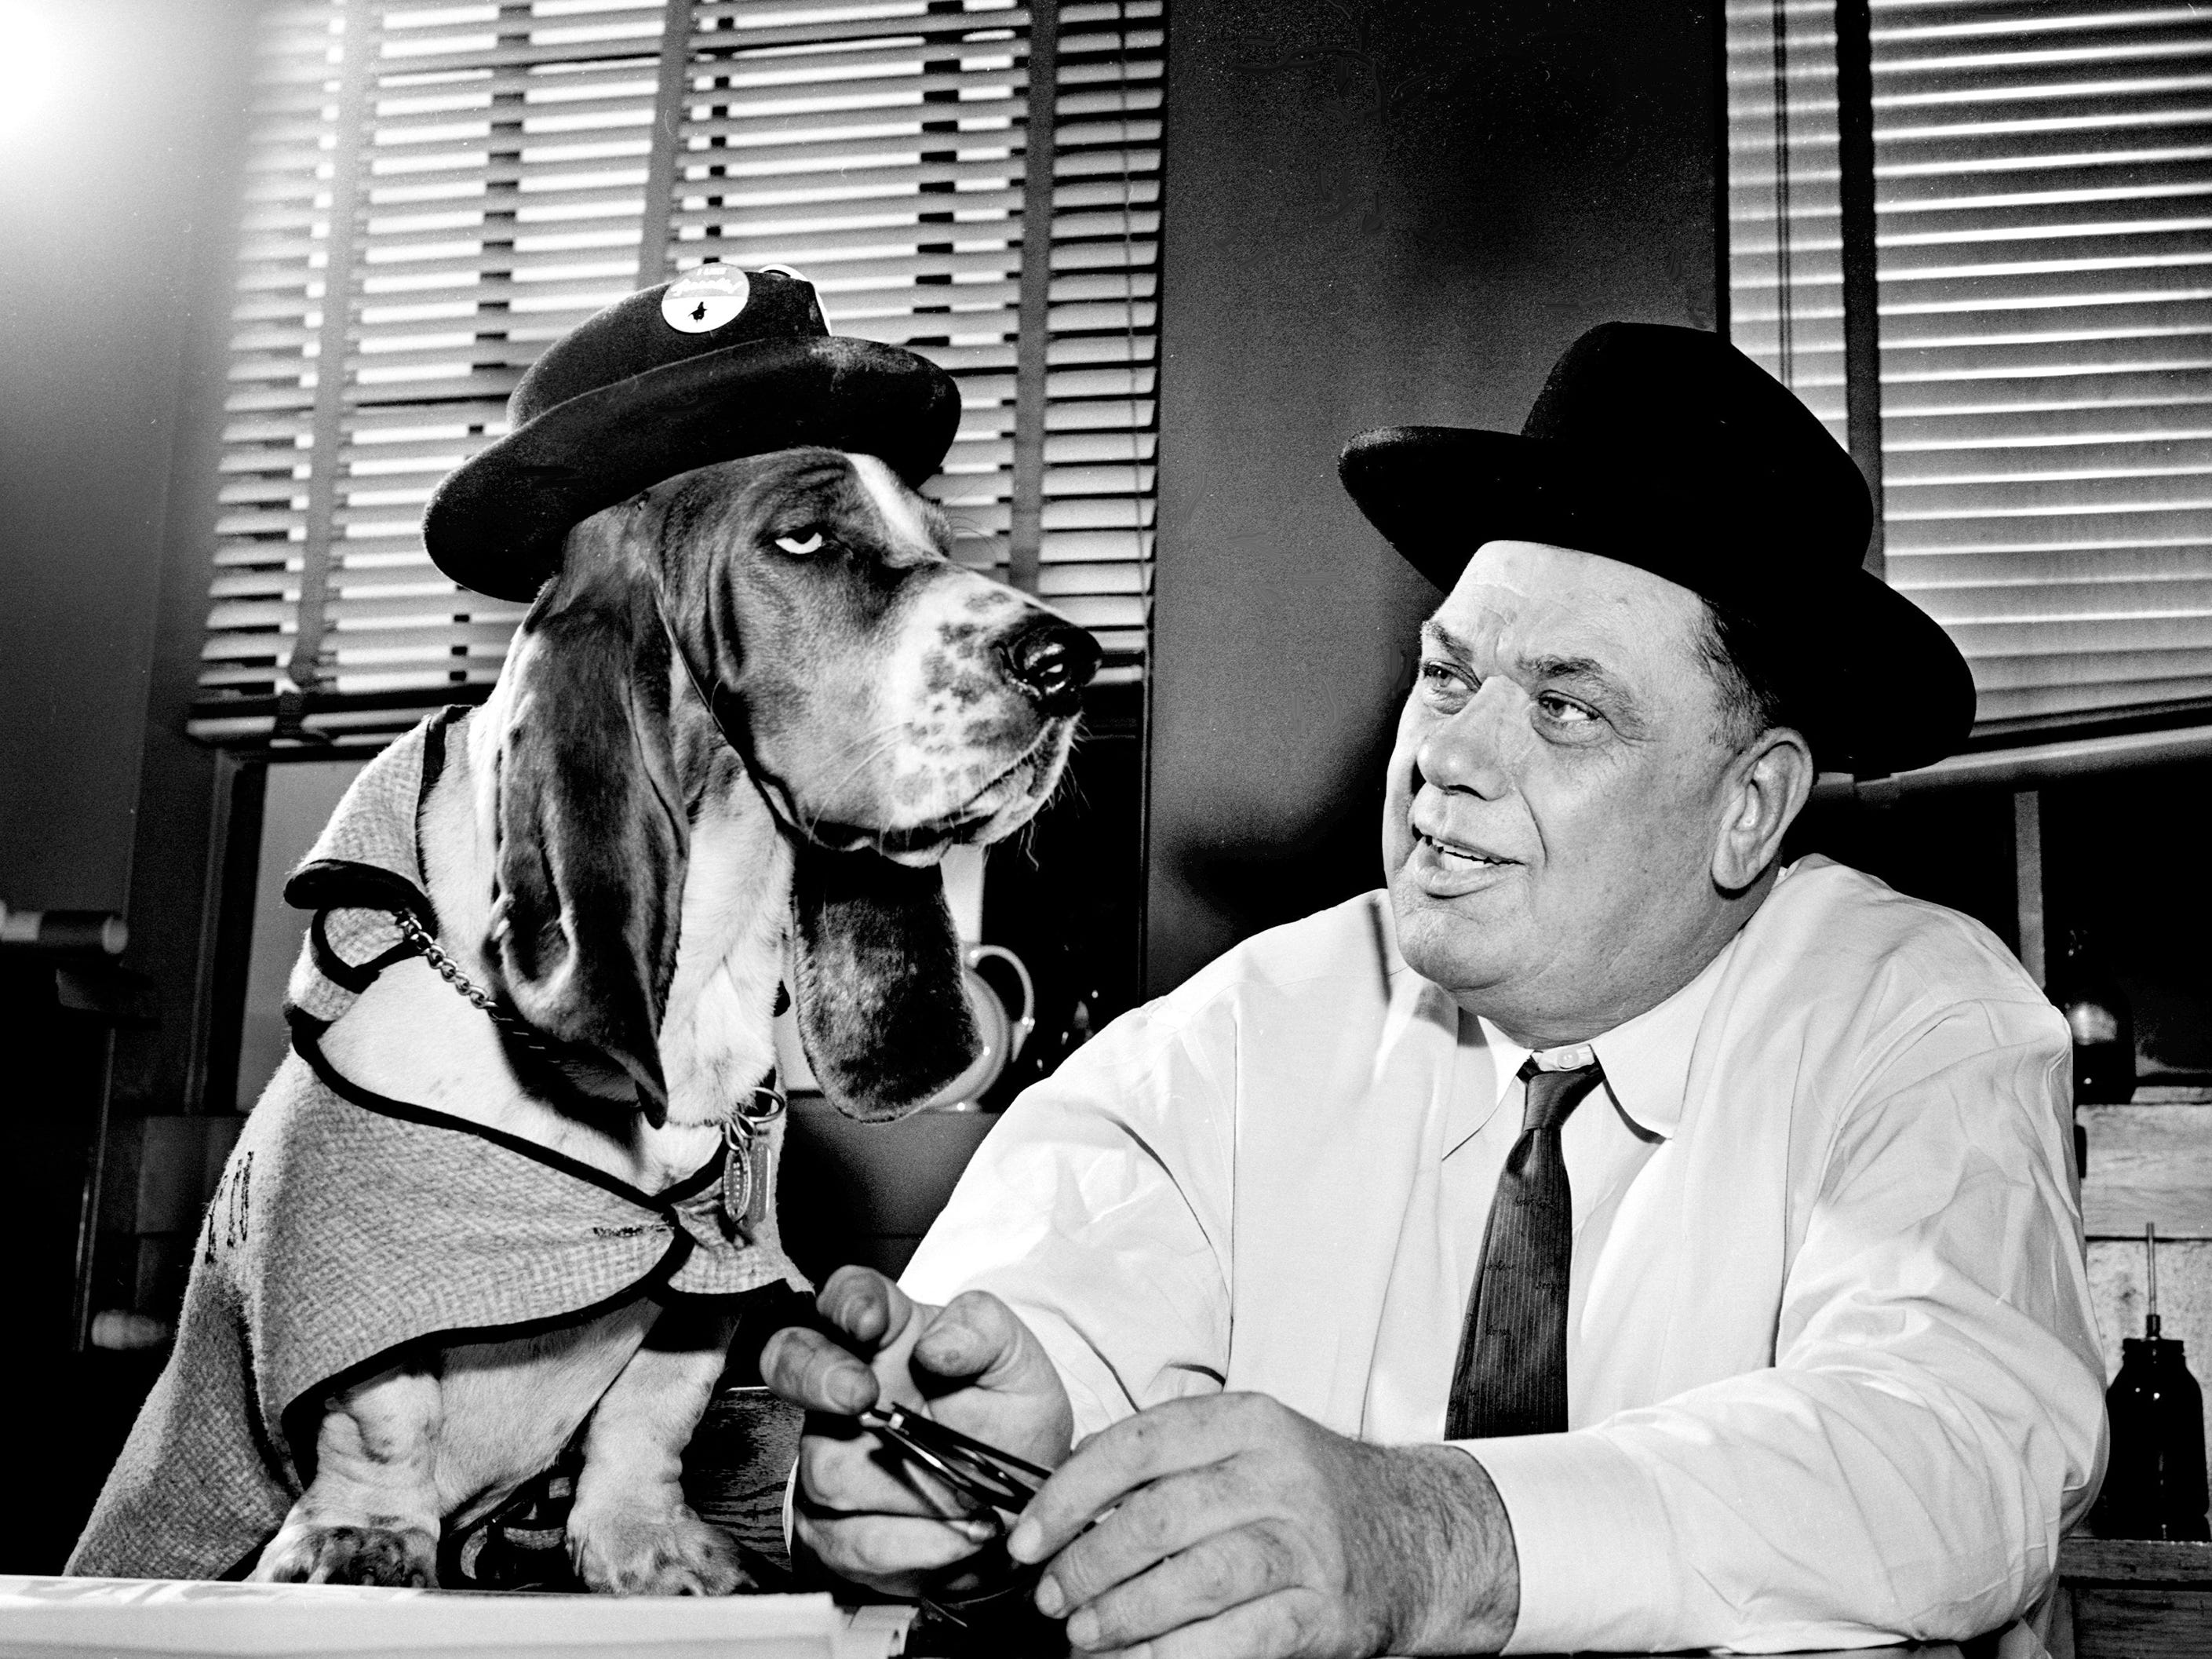 Tennessean reporter and columnist Elmer Hinton shares a moment with a basset hound in the city newsroom Nov. 22, 1960.